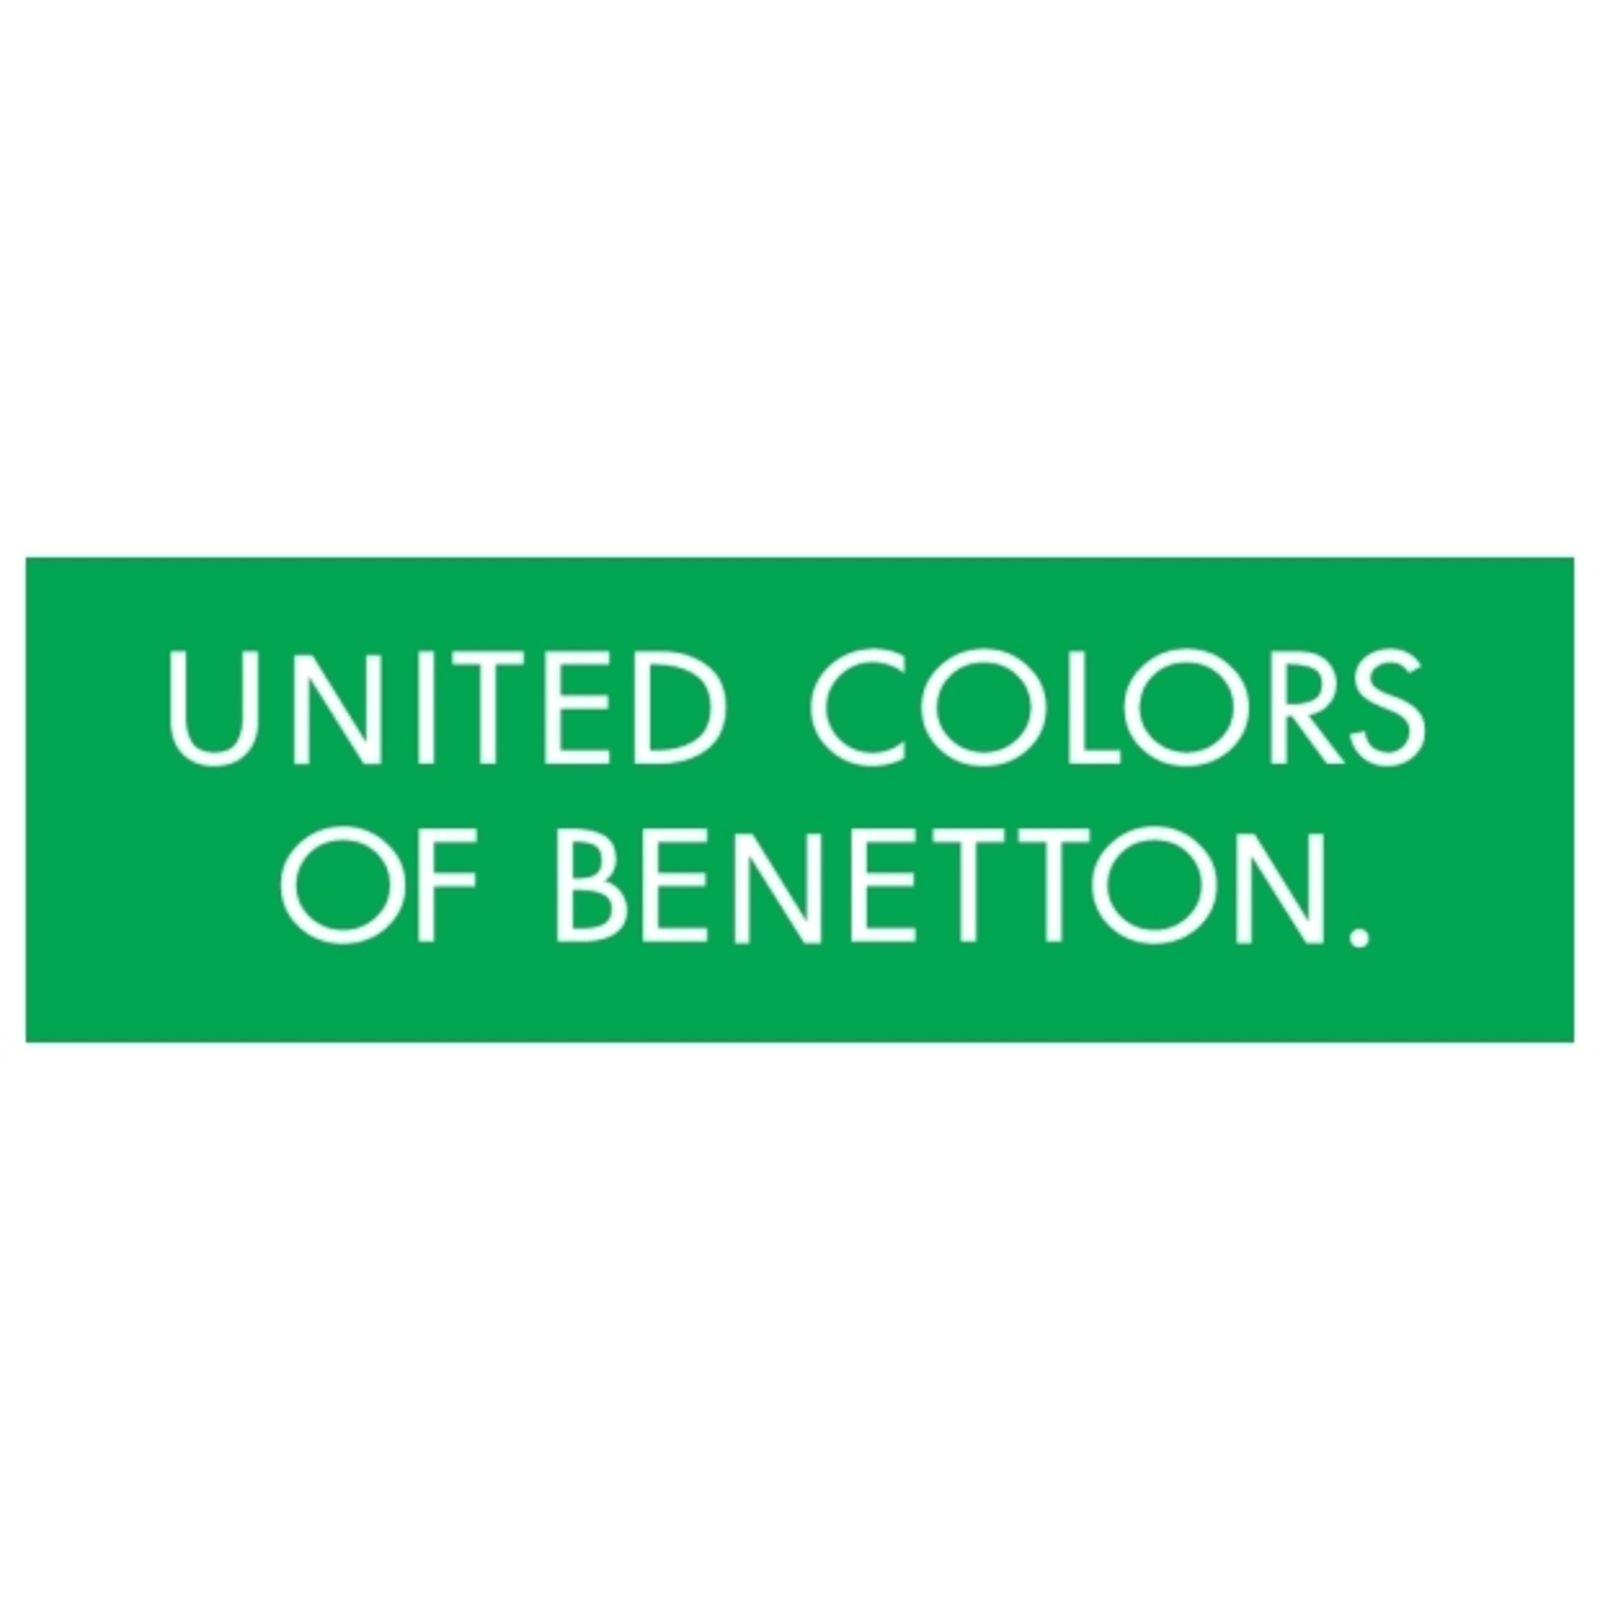 UNDERCOLORS OF BENETTON (Изображение 1)